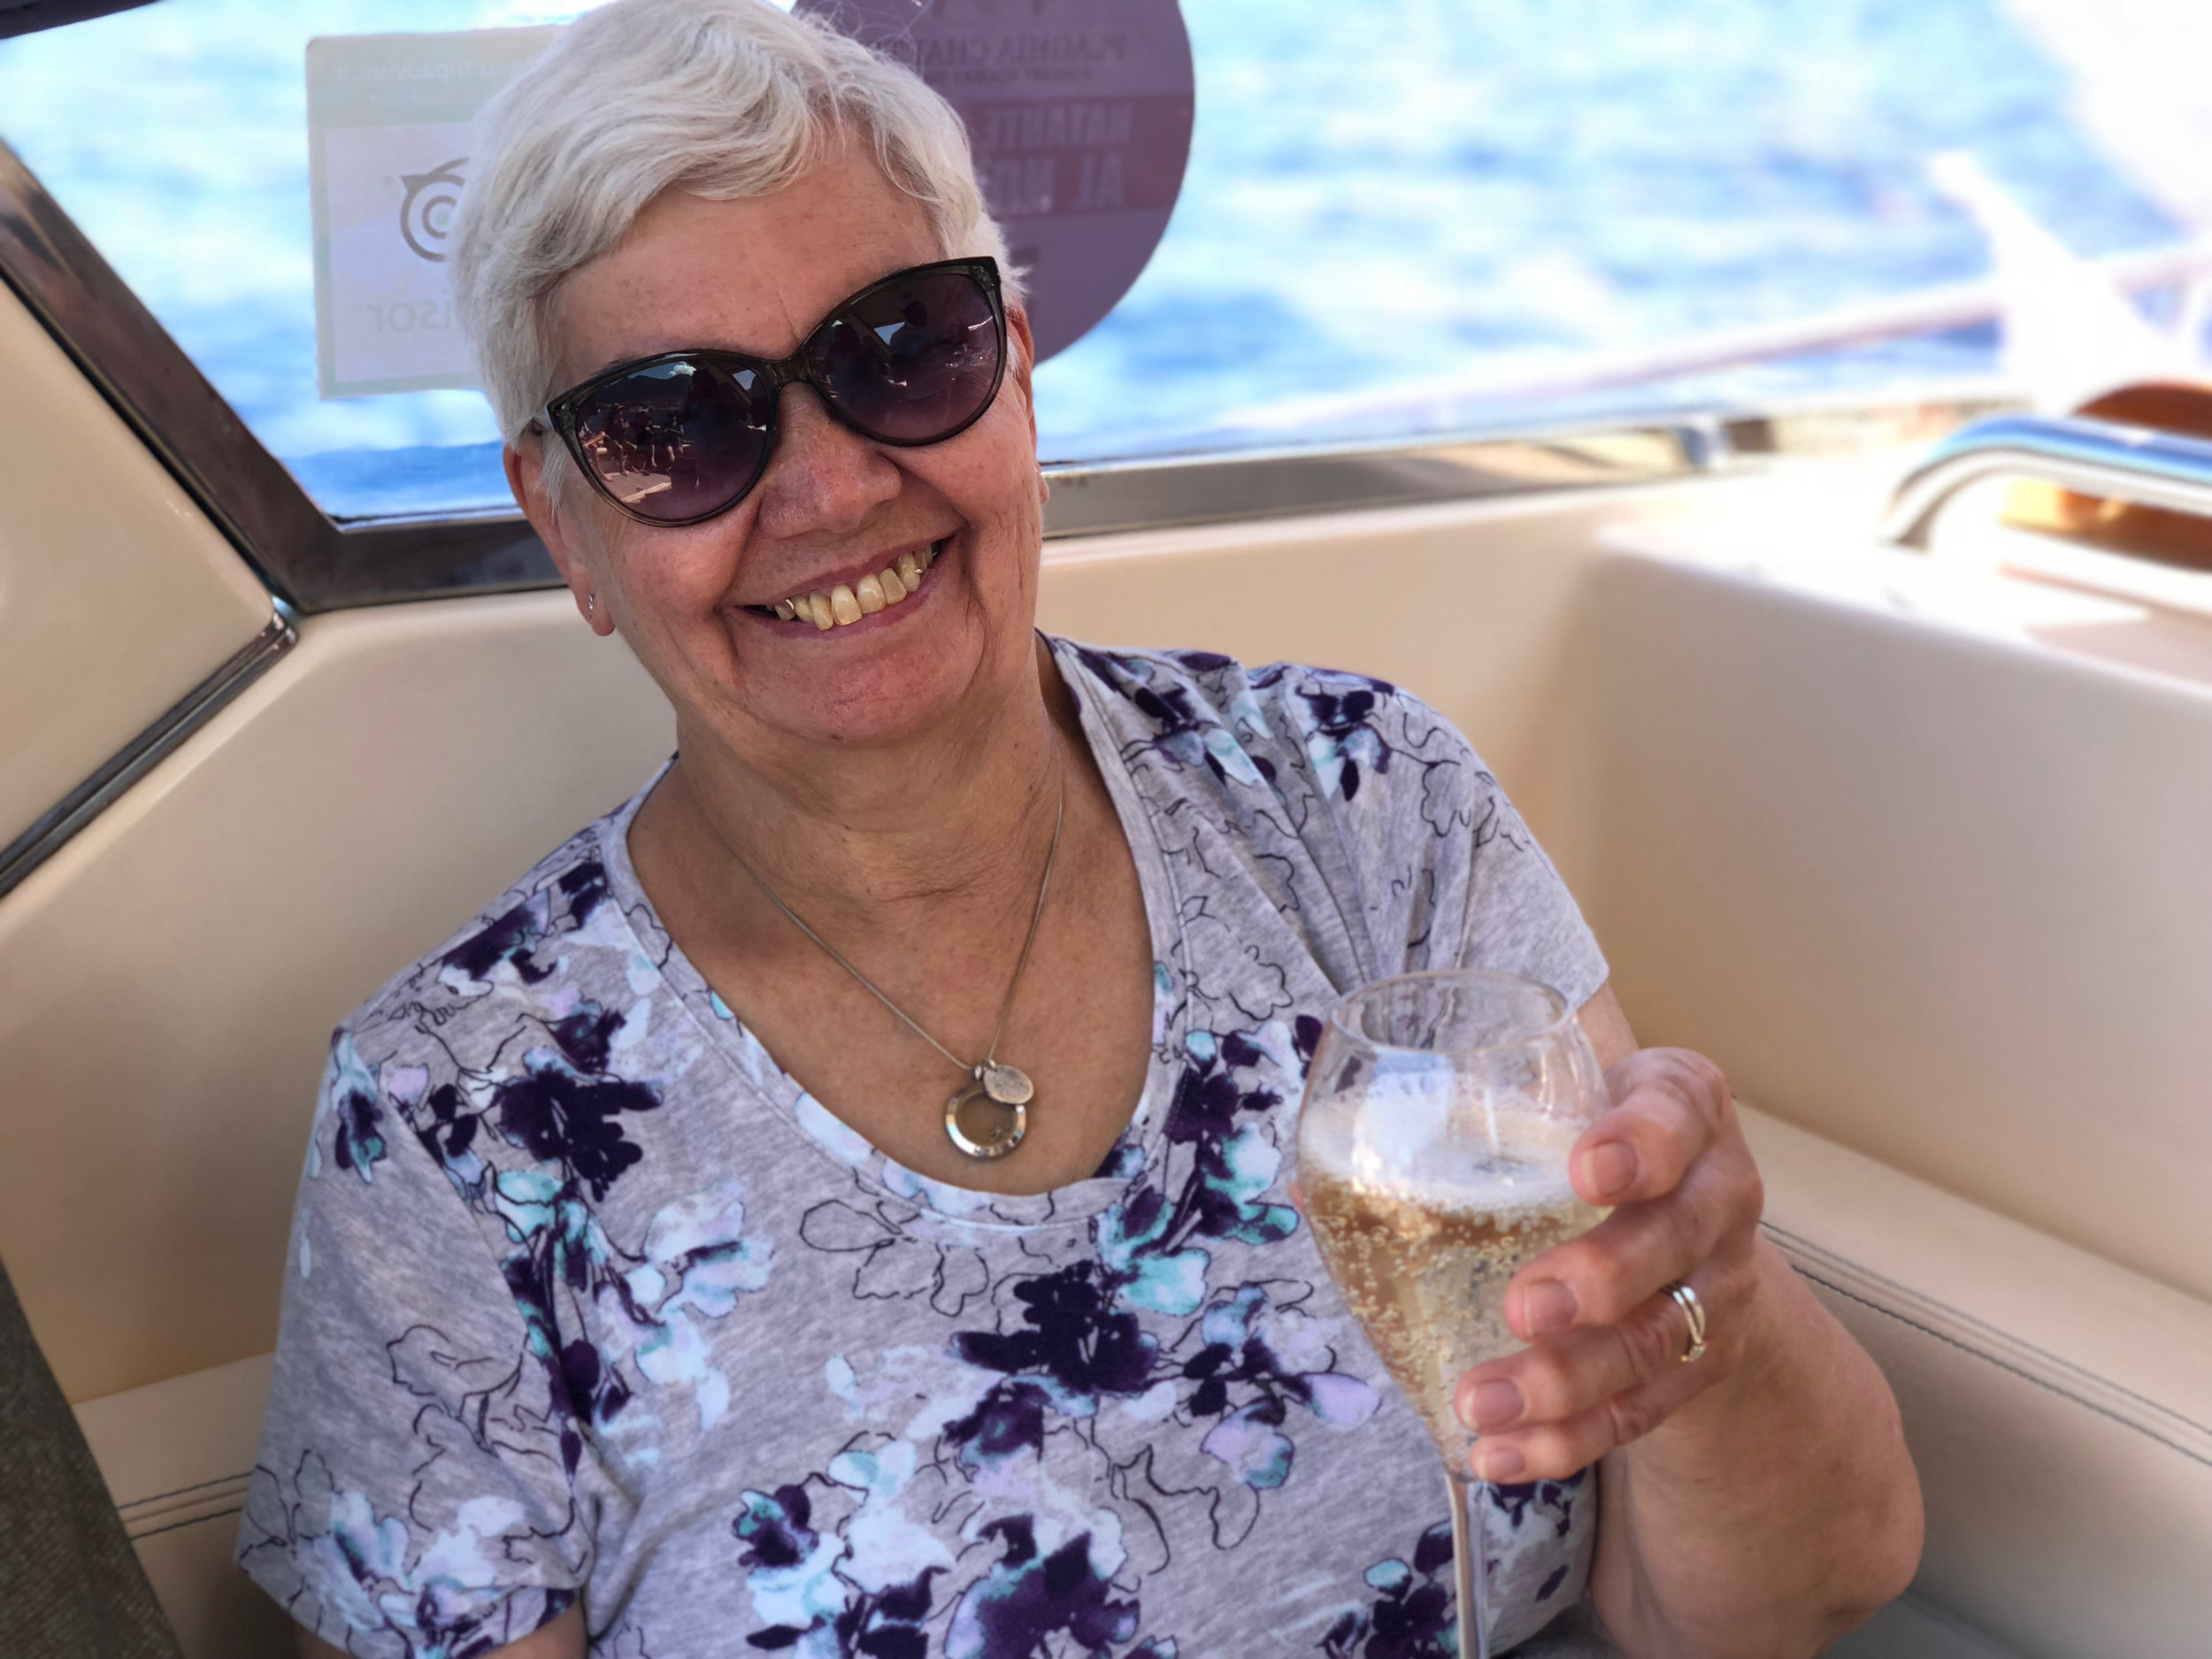 chris enjoys a bubbly while cruising the amalfi coastal waters